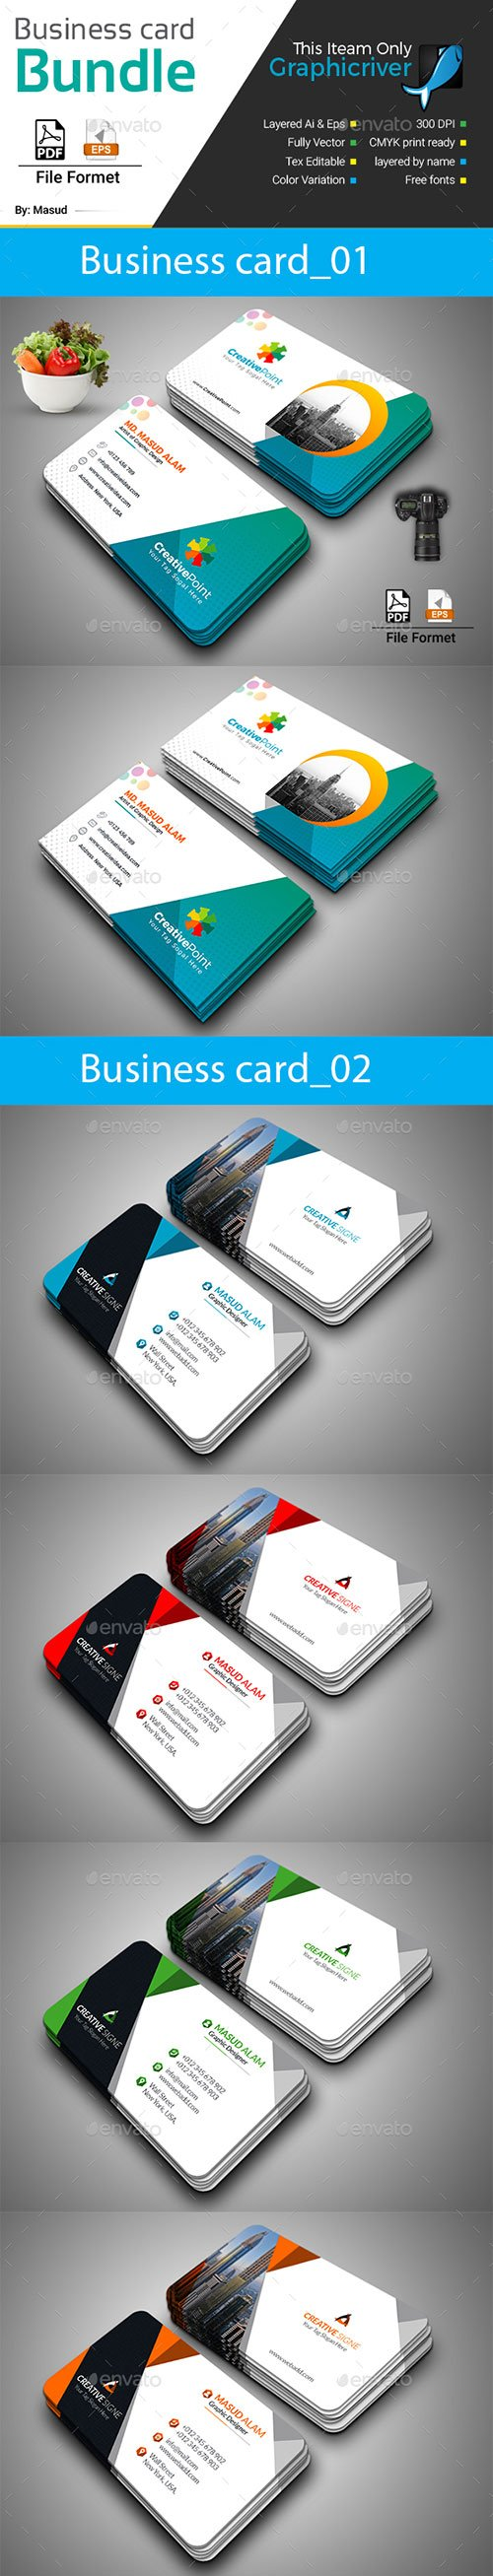 GraphicRiver - Business Card Bundle 2 in 1 22188736